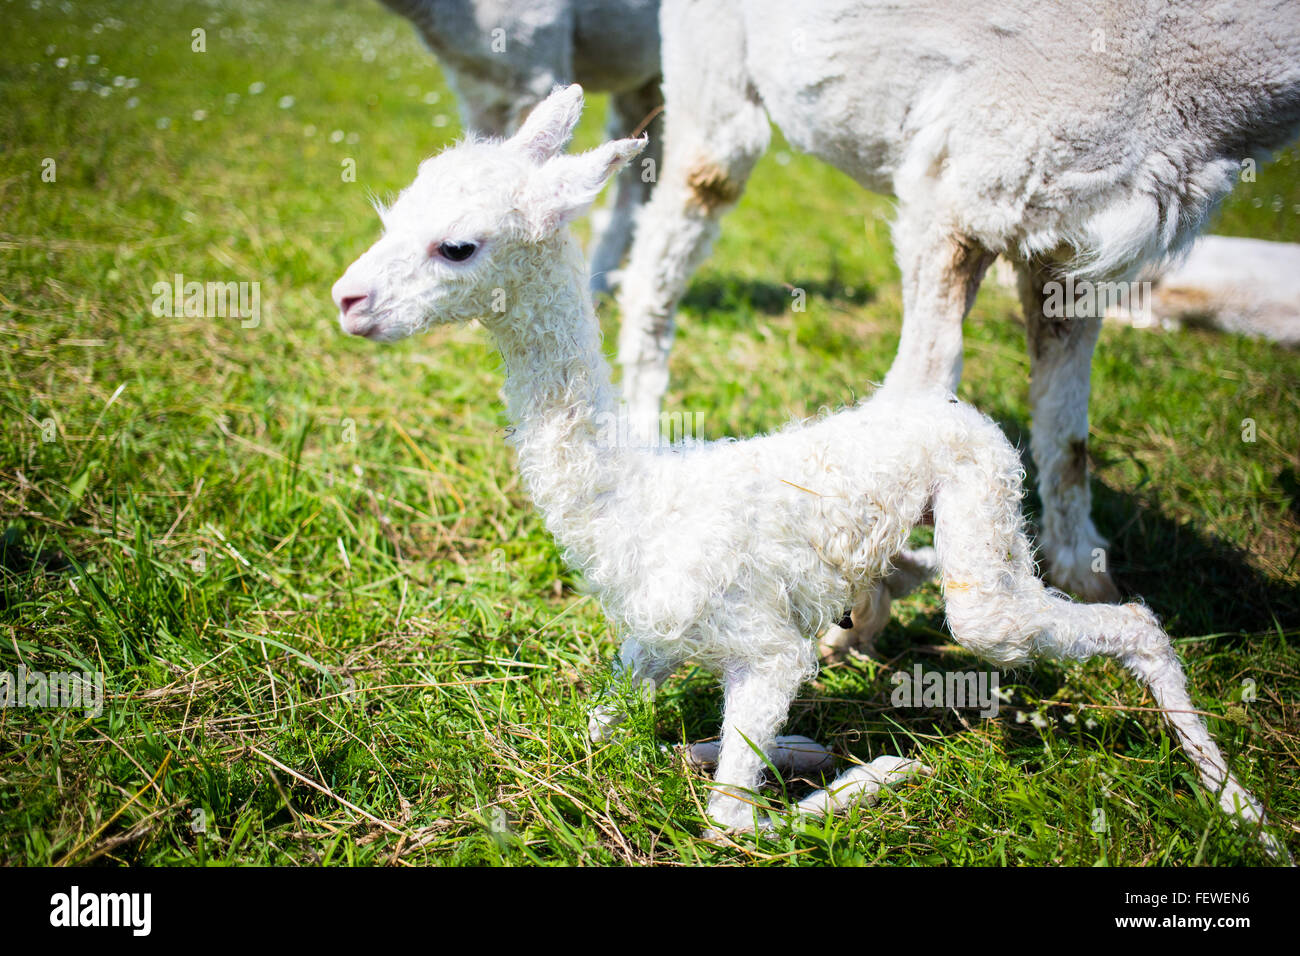 Alpaca Trying To Stand Grassy Field - Stock Image